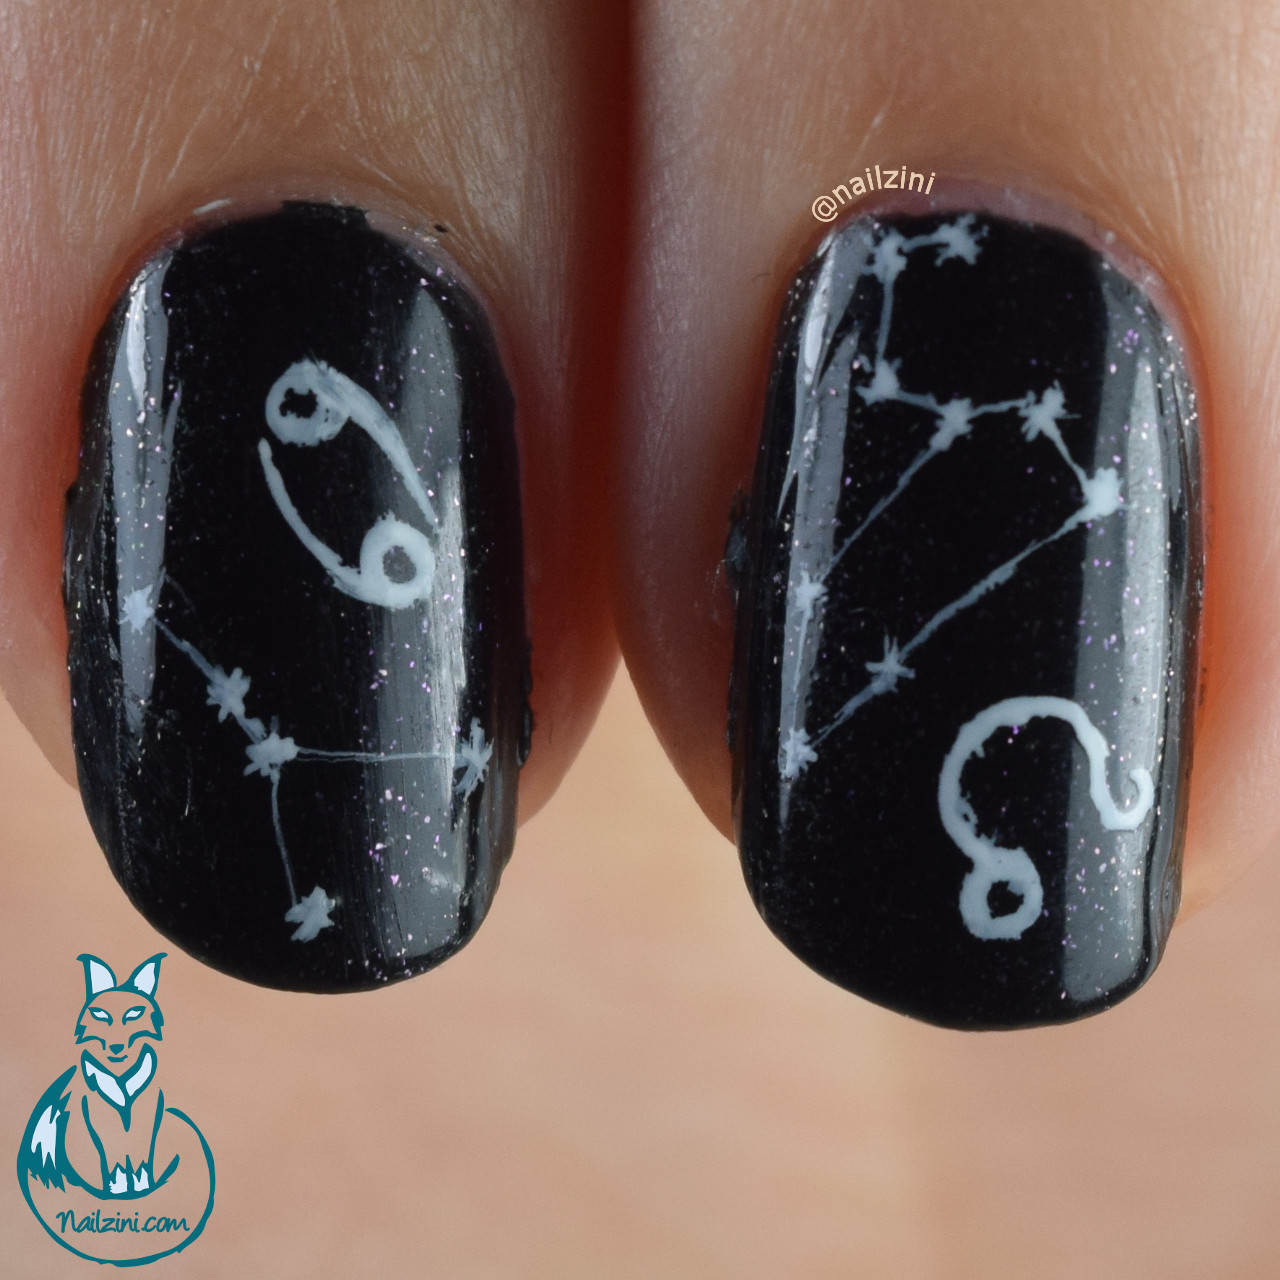 Zodiac Signs Nail Art | Nailzini: A Nail Art Blog